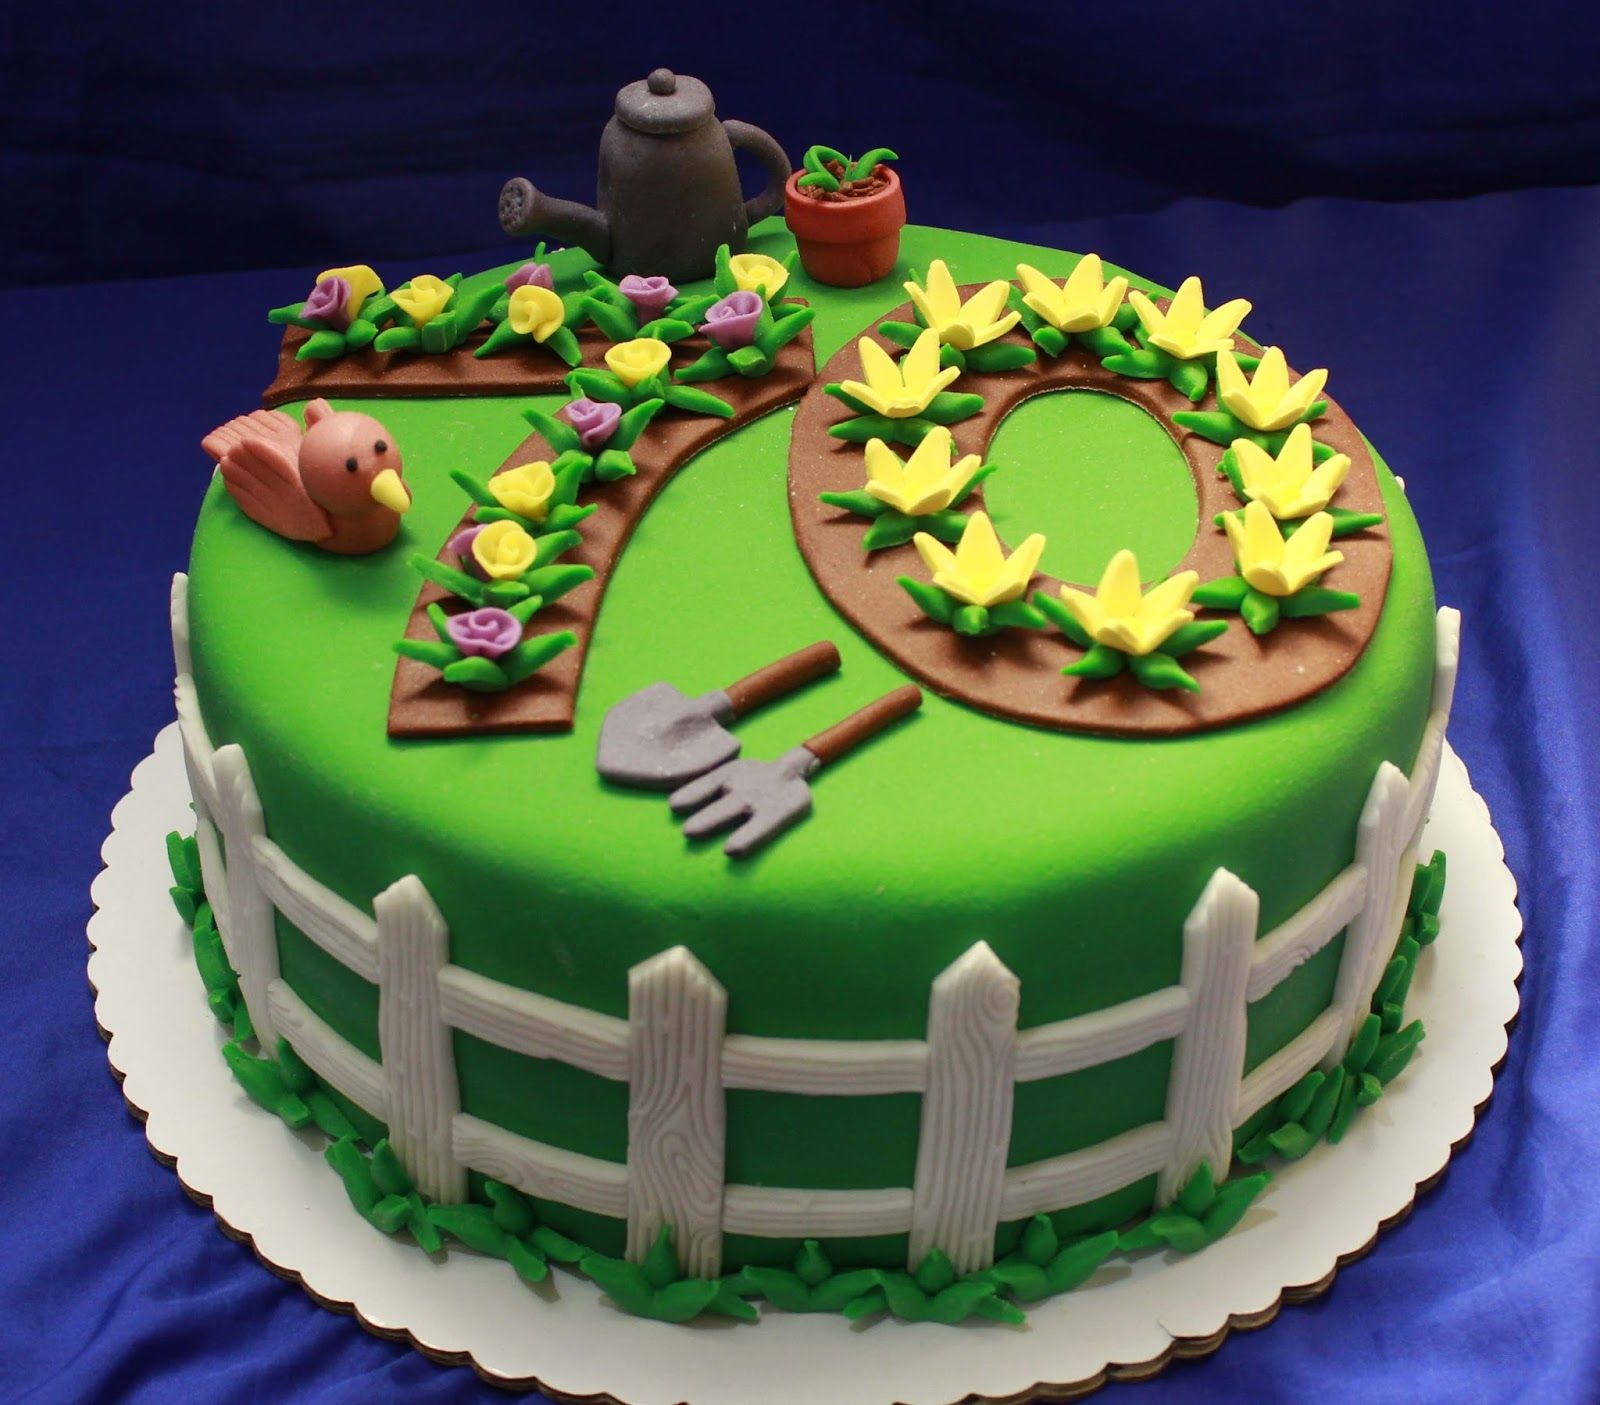 Pin By Silvija Petrovic On Torte In 2020 Cake Decorating Frosting 60th Birthday Cakes Cake